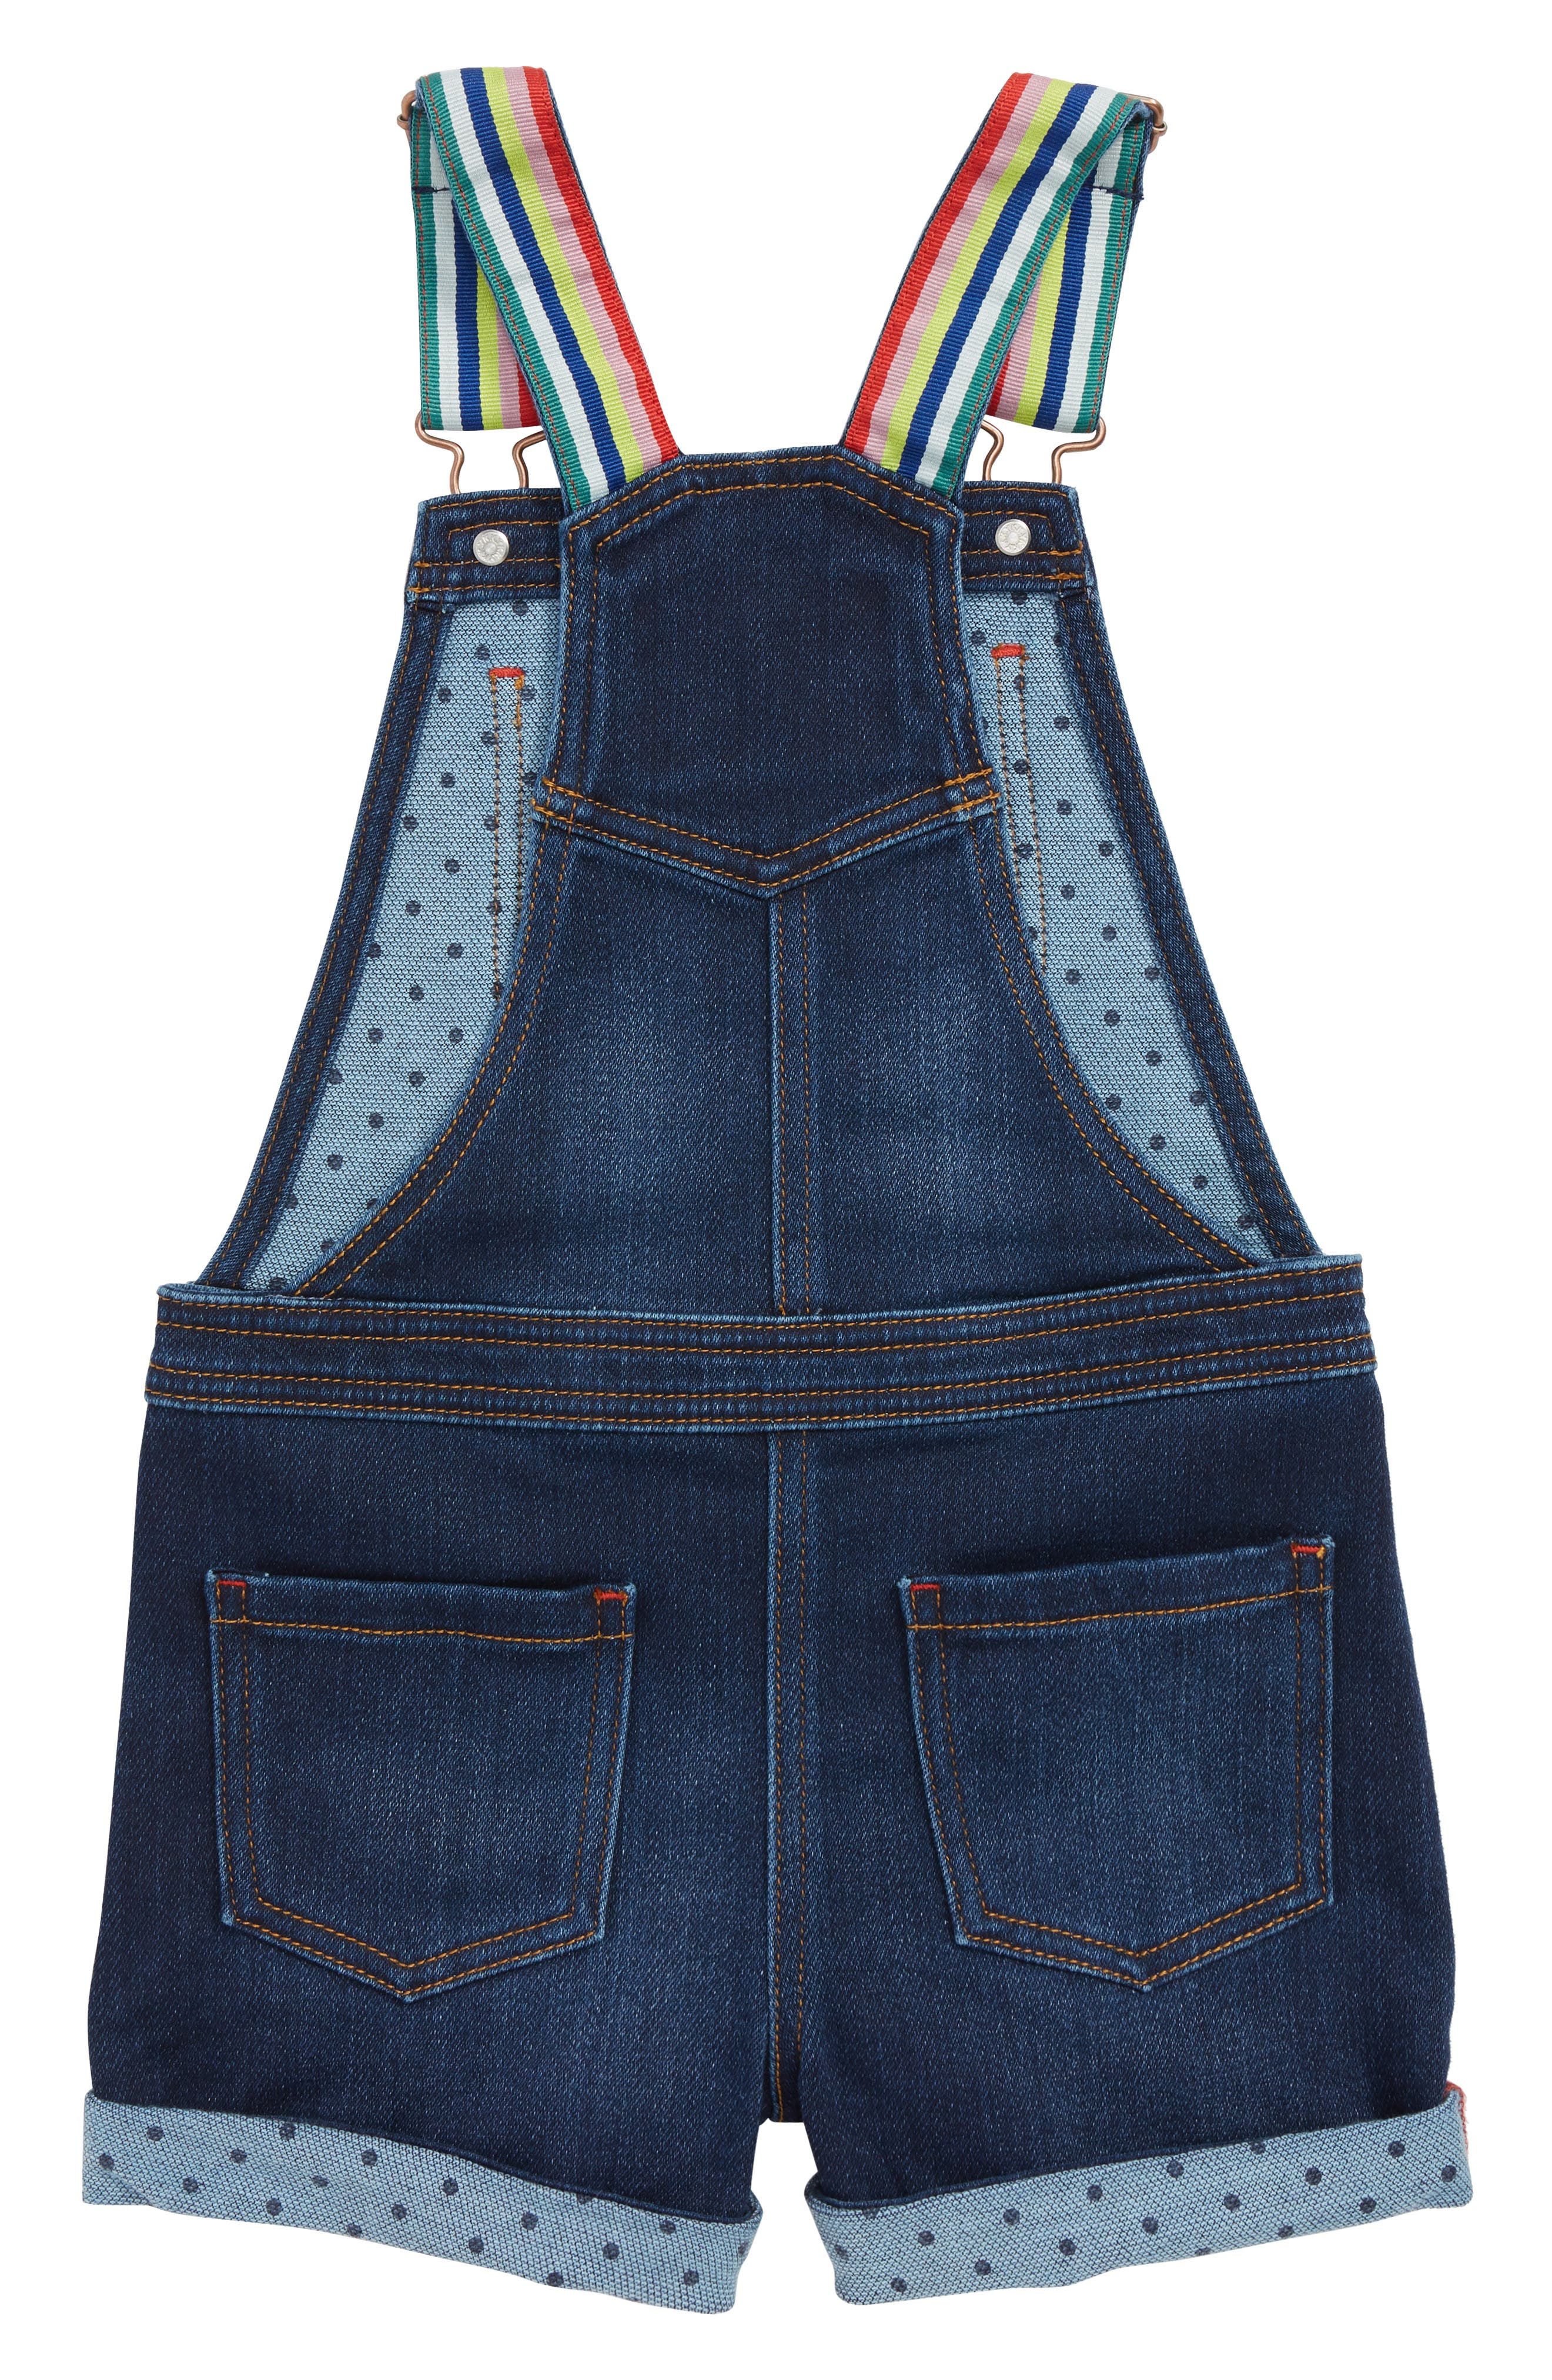 Dungarees Short Overalls,                             Alternate thumbnail 2, color,                             469